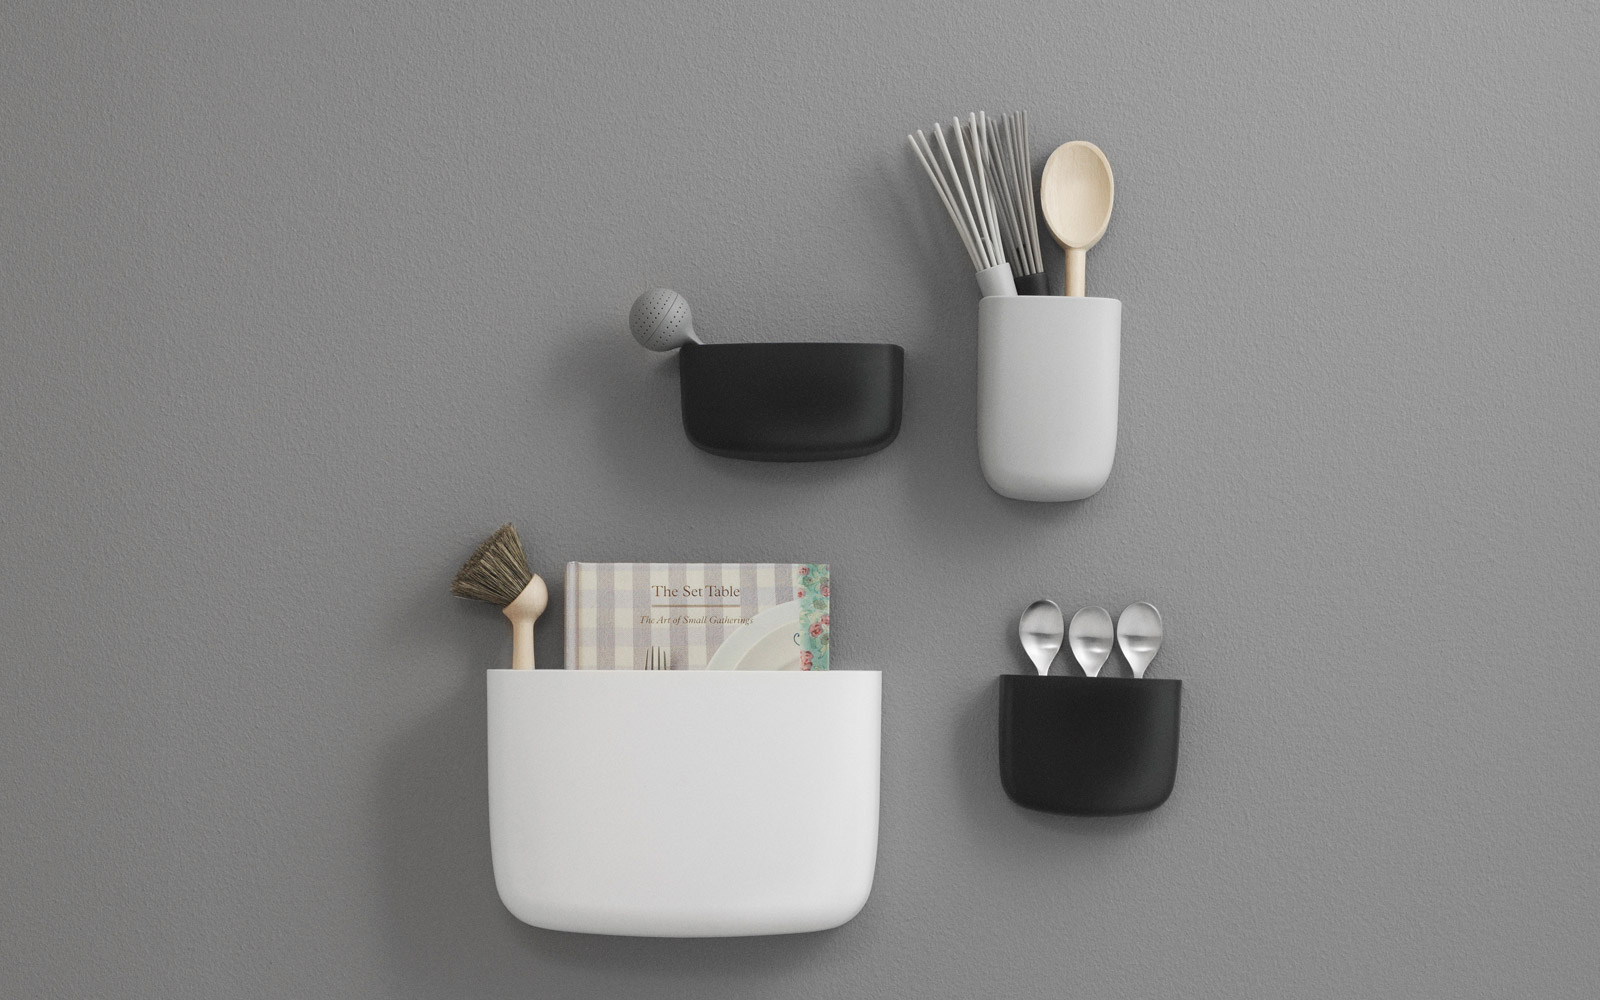 Minimal white, grey and black storage pots displayed against a grey wall. The storage pots vary in size and are filled with common kitchen items.